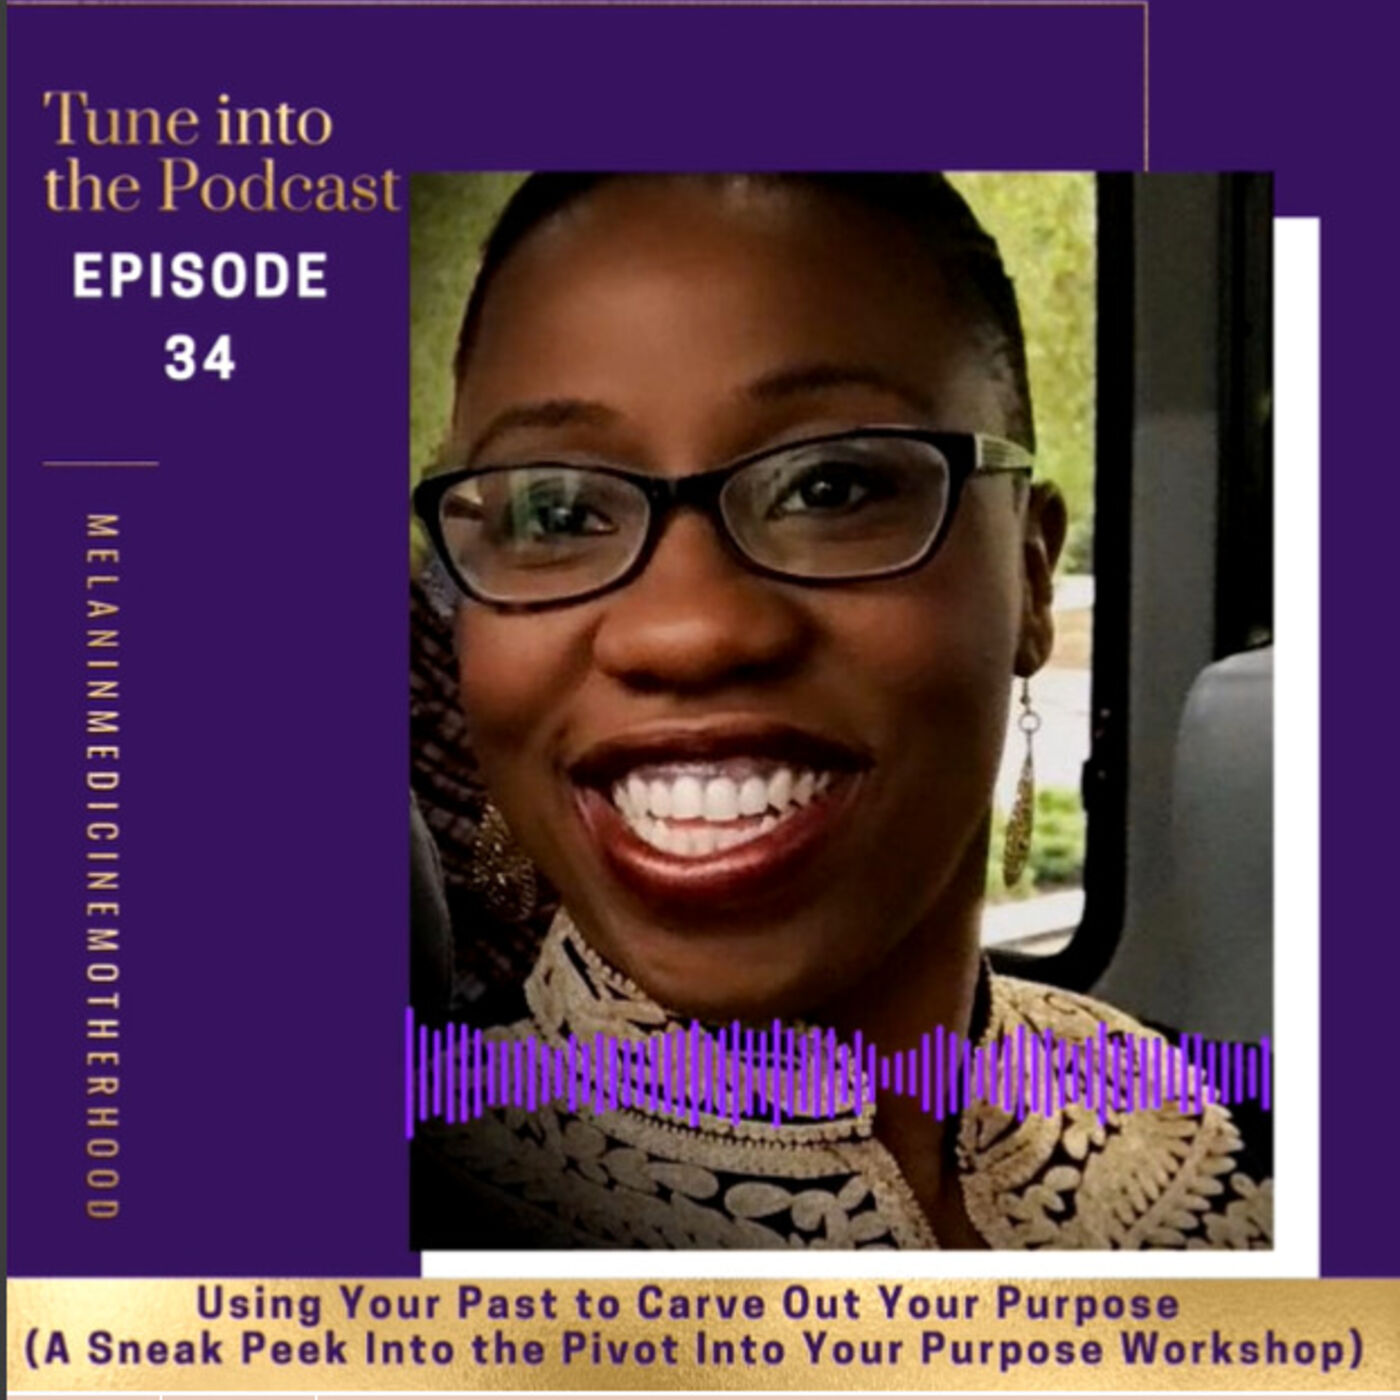 Episode 34: Using Your Past to Carve Out Your Purpose (Sneak Peek Into the Pivot Into Your Purpose Workshop)